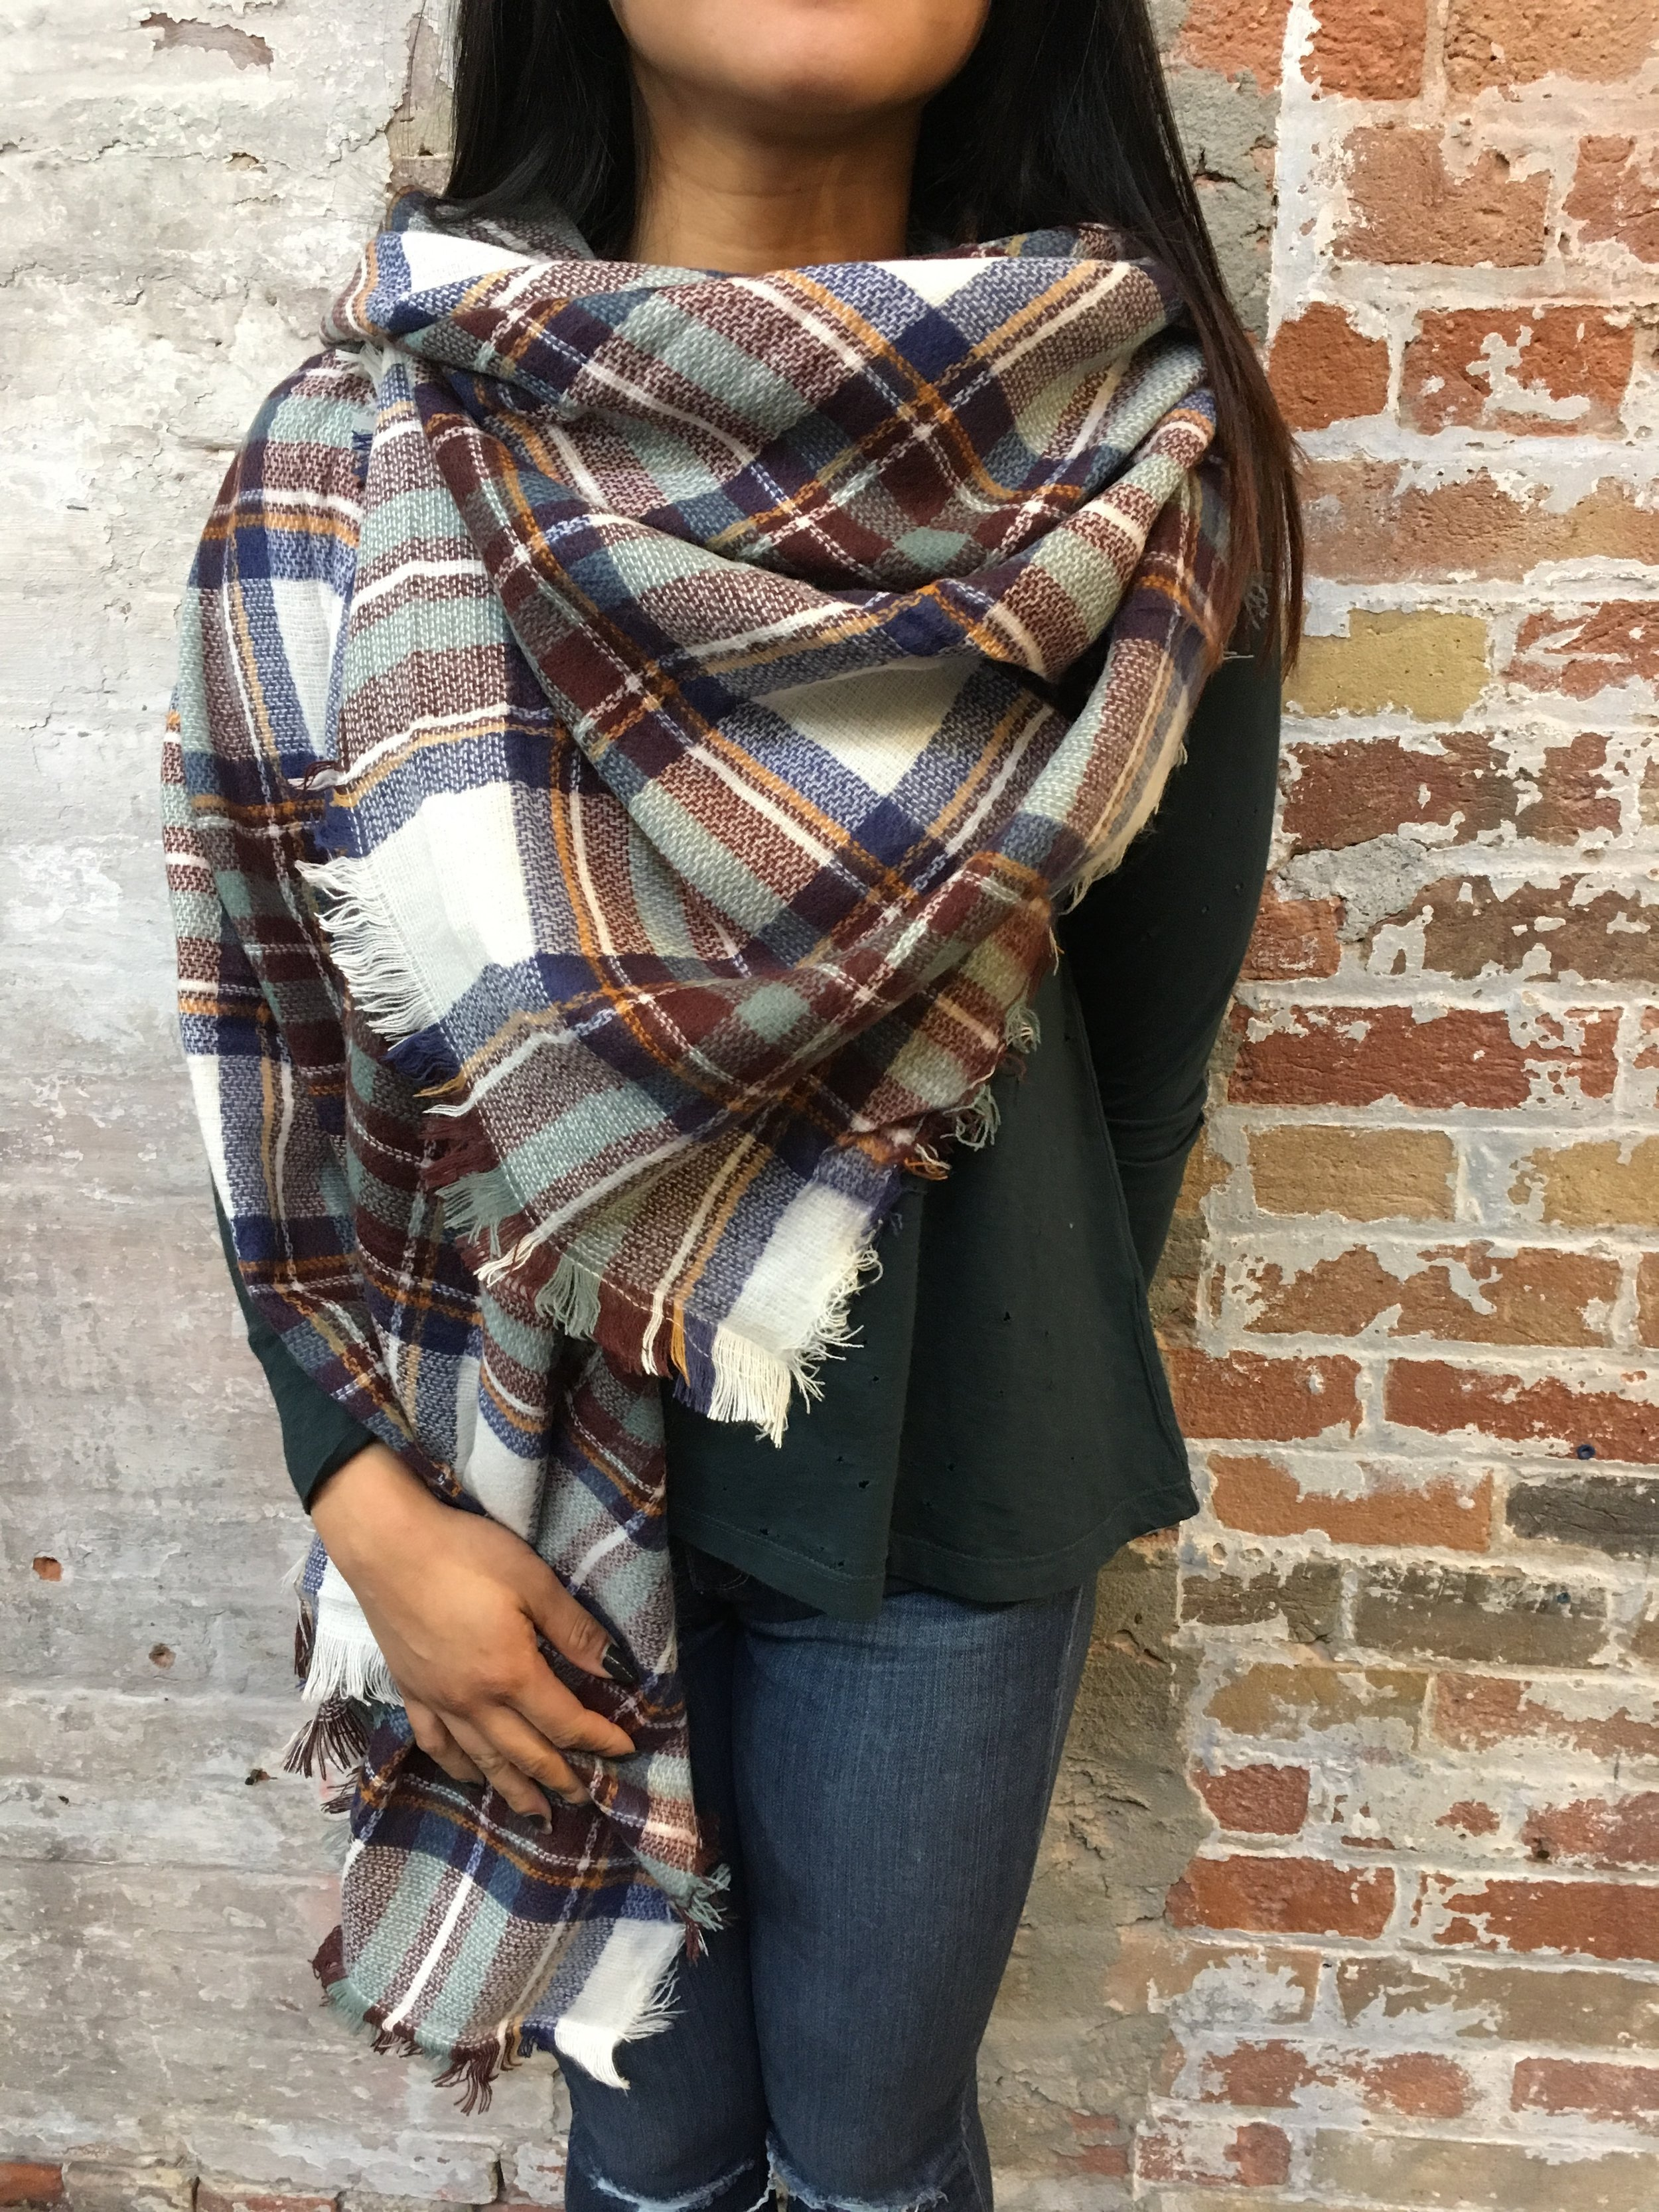 With a larger blanket scarf you have the option of wearing it as a cape! Fold the scarf into a large triangle and simply drape over you as desired, tucking in one corner at the neck to leave one flowing by your side.